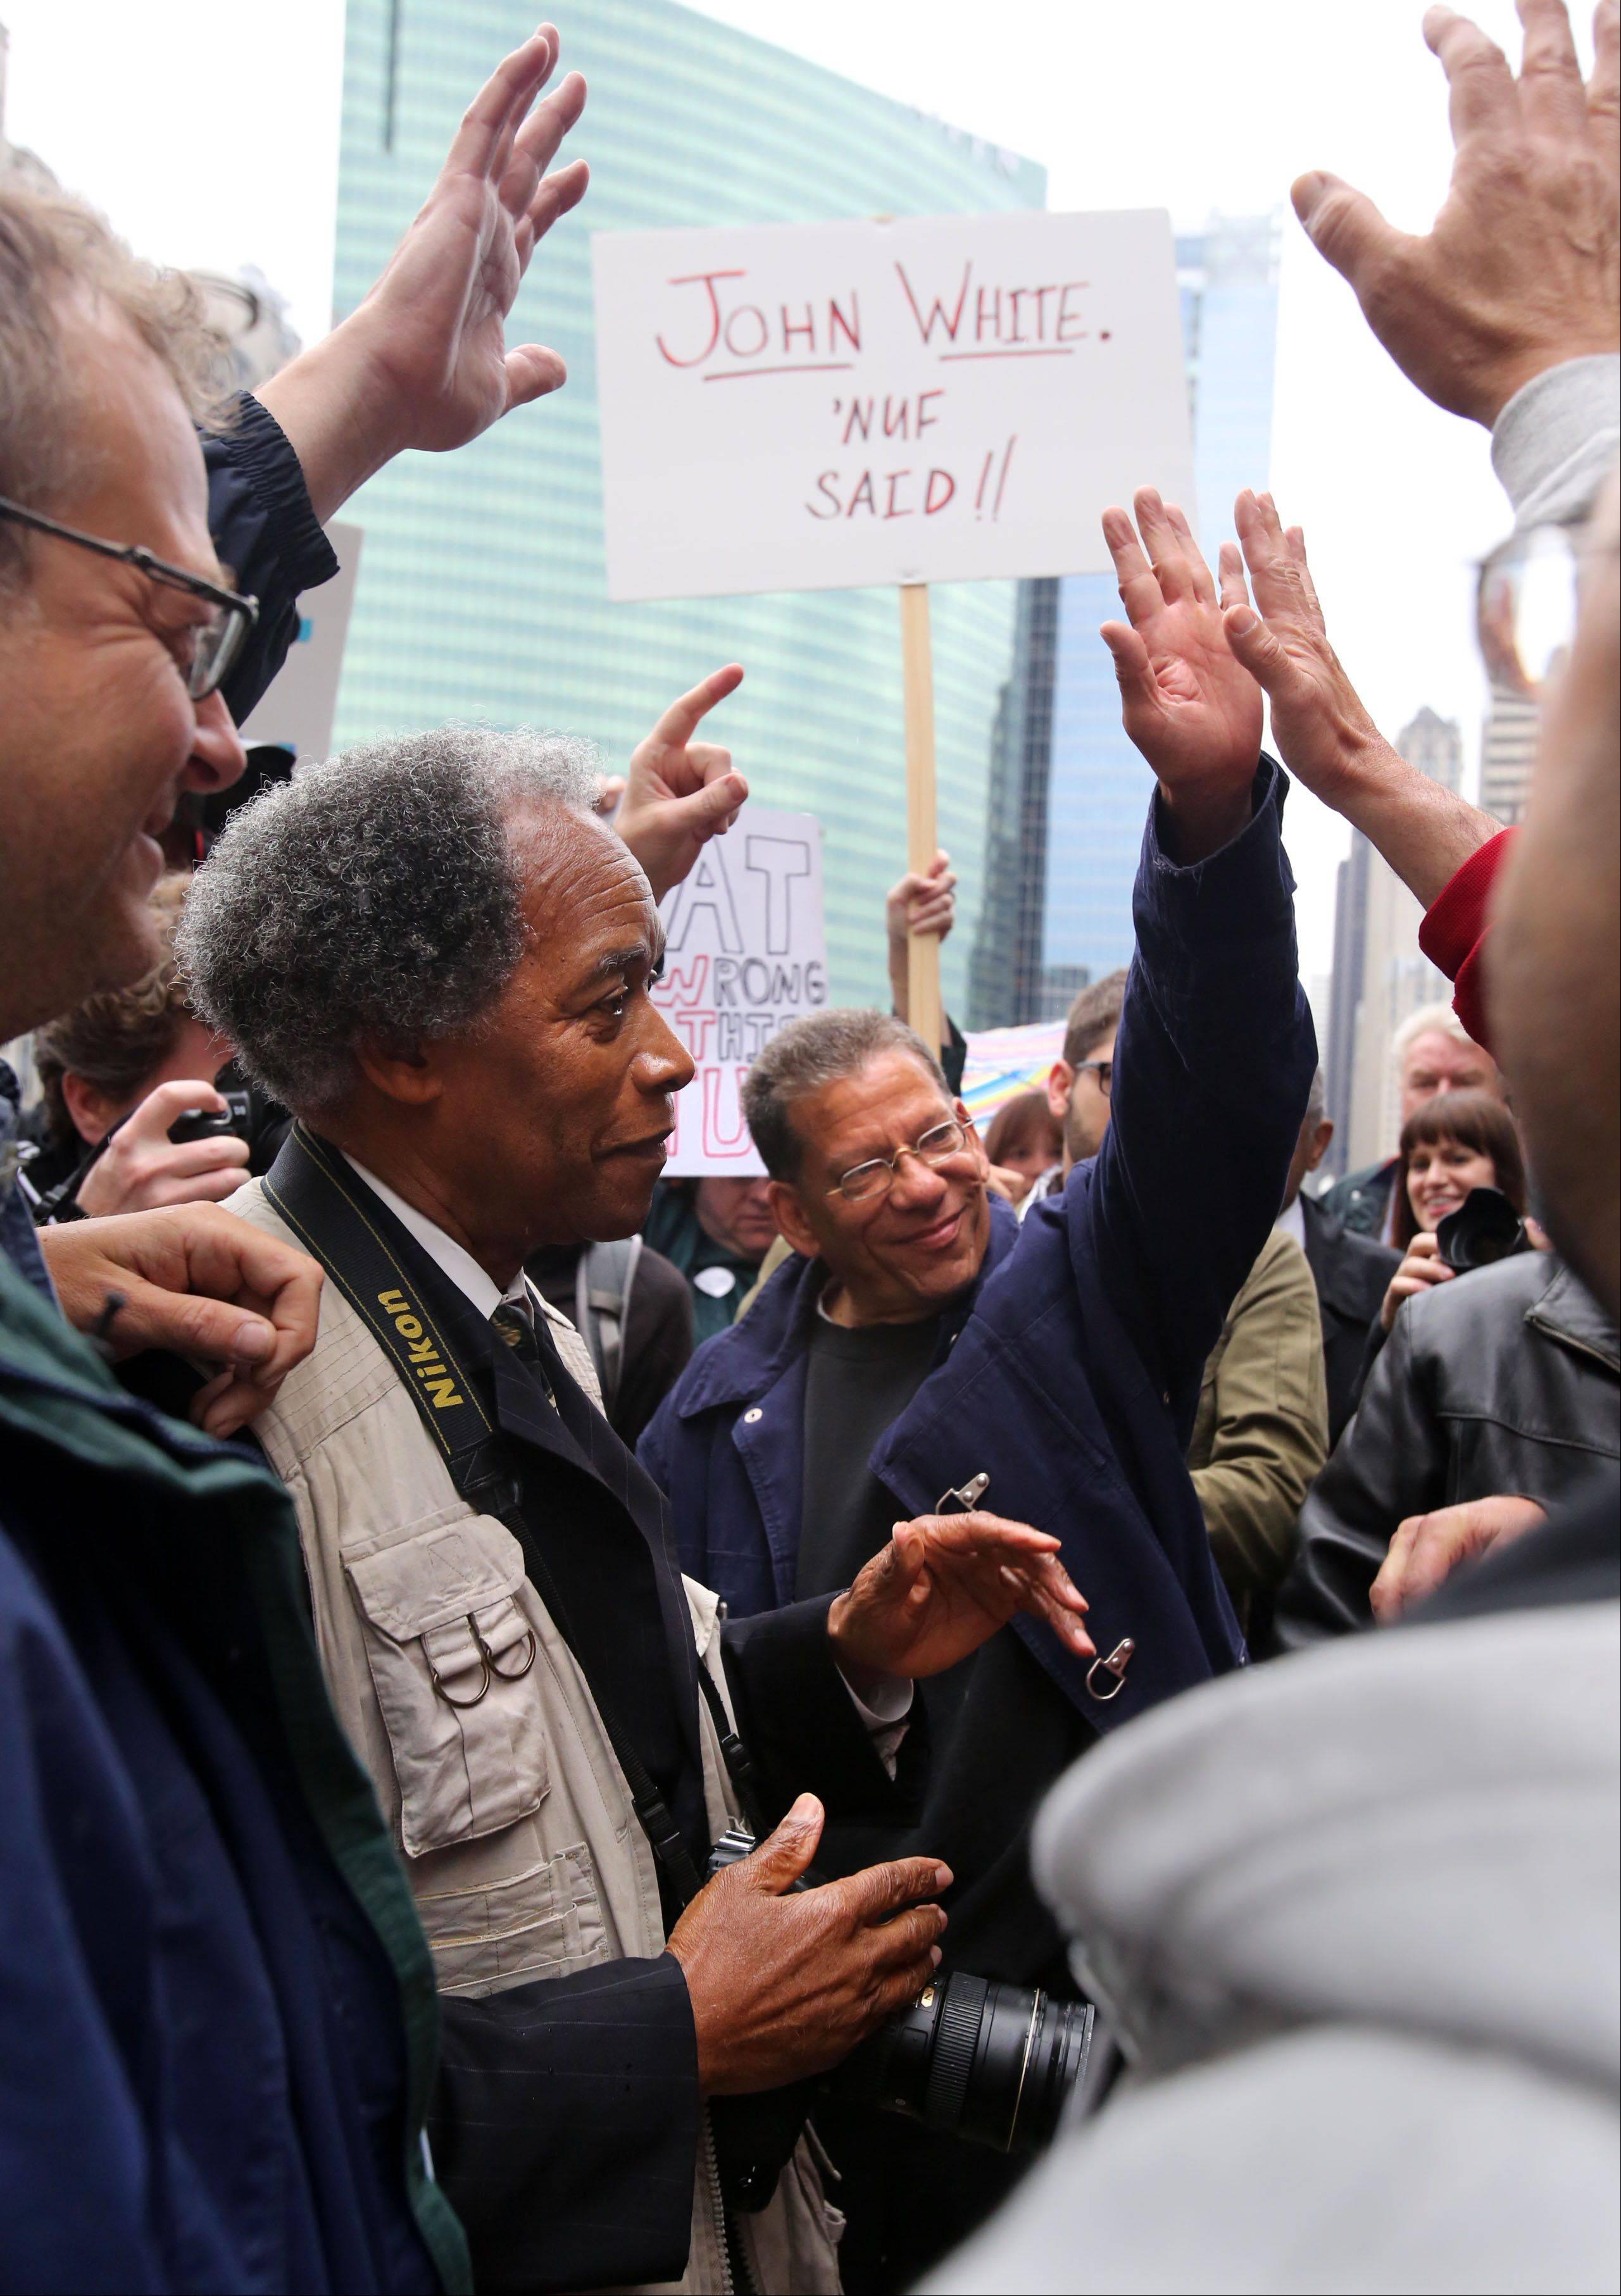 John H. White, second from left, who won a Pulitzer in 1982, and other former Sun-Times photographers high-five after about 150 supporters marched in front of the Chicago Sun-Times building in Chicago Thursday. The rally was organized by the Chicago Newspaper Guild in response to the paper cutting its photography staff.